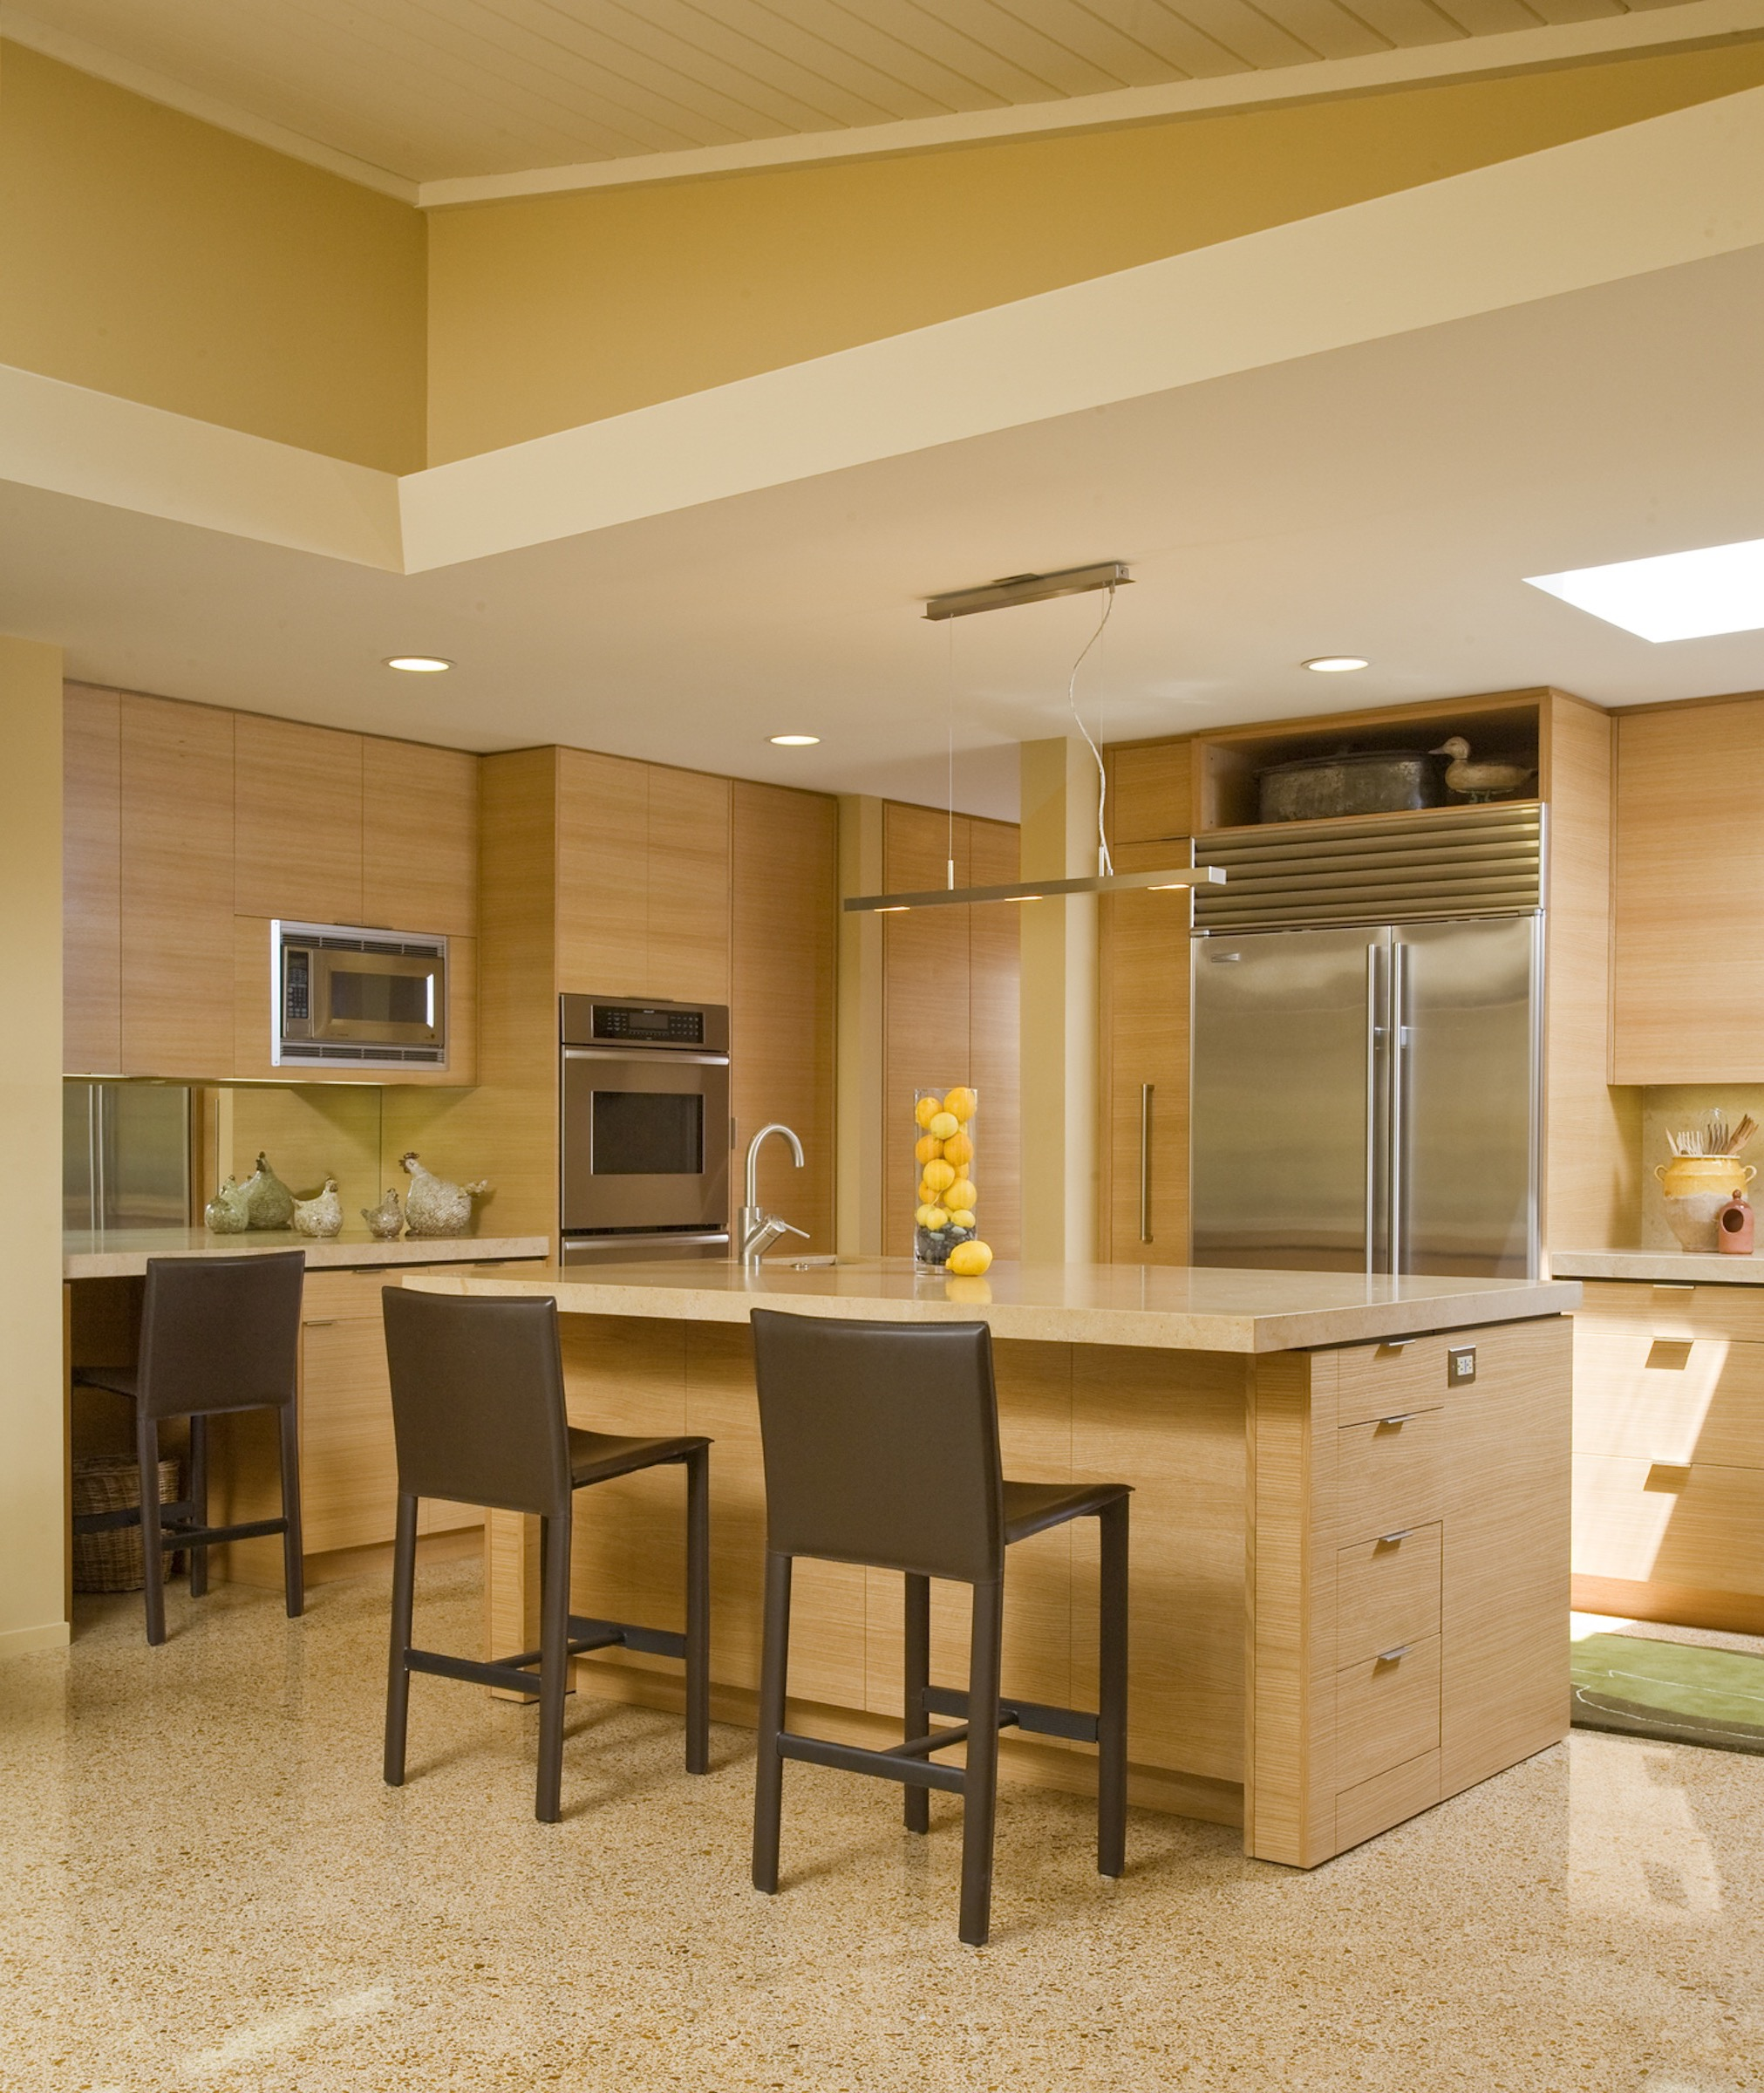 Kitchen cabinets colors ideas for best appearance 17440 for Modern yellow kitchen cabinets